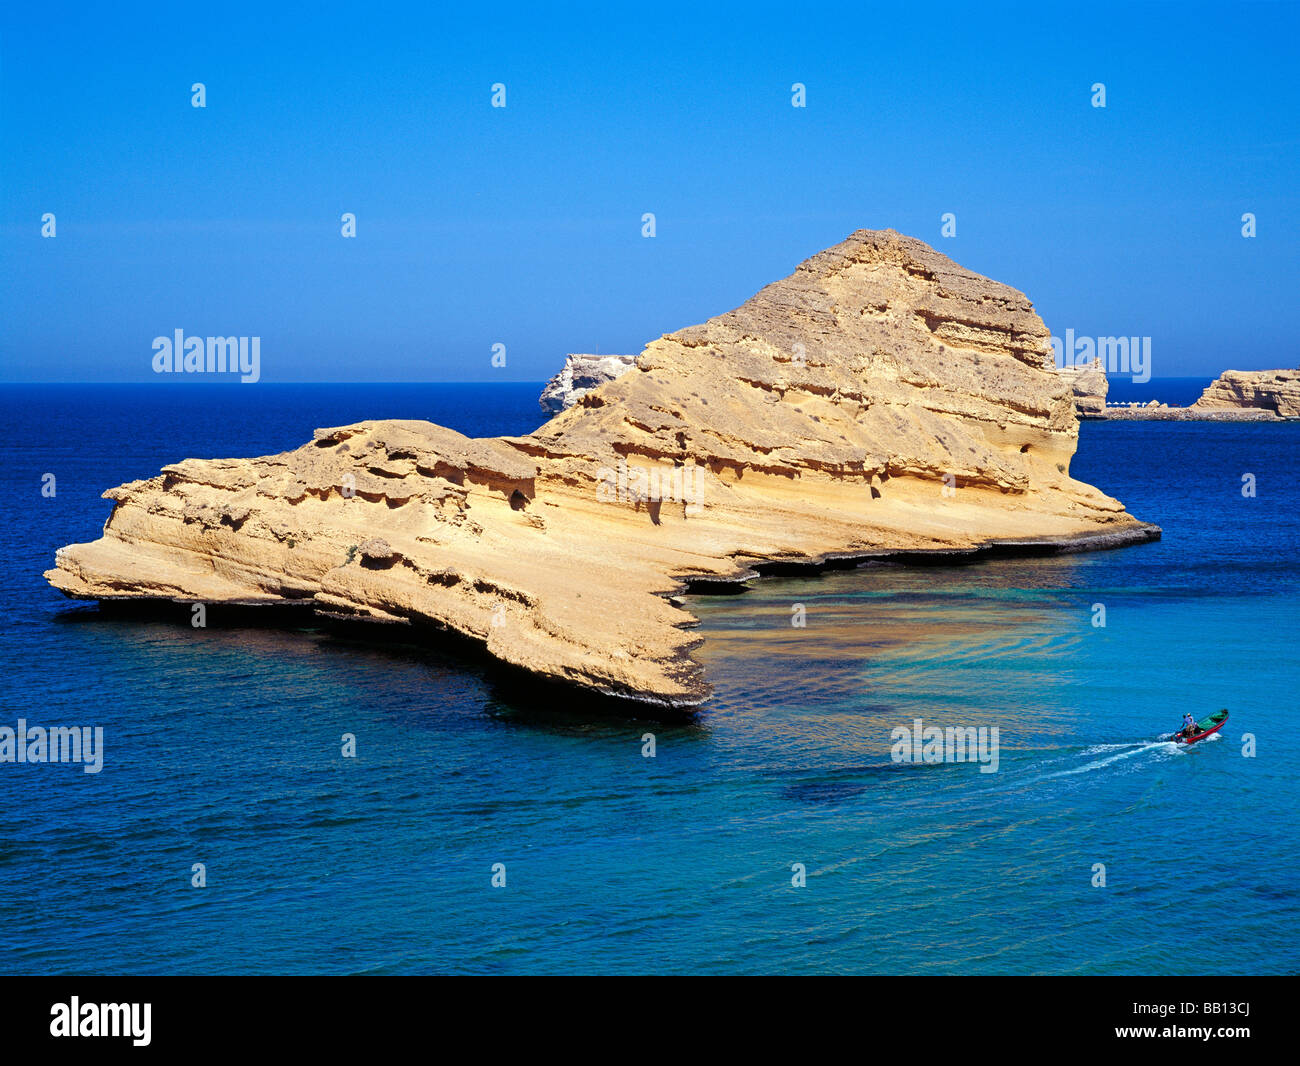 fisher boat crossing in front of a big rock in the blue Arabian Sea Stock Photo